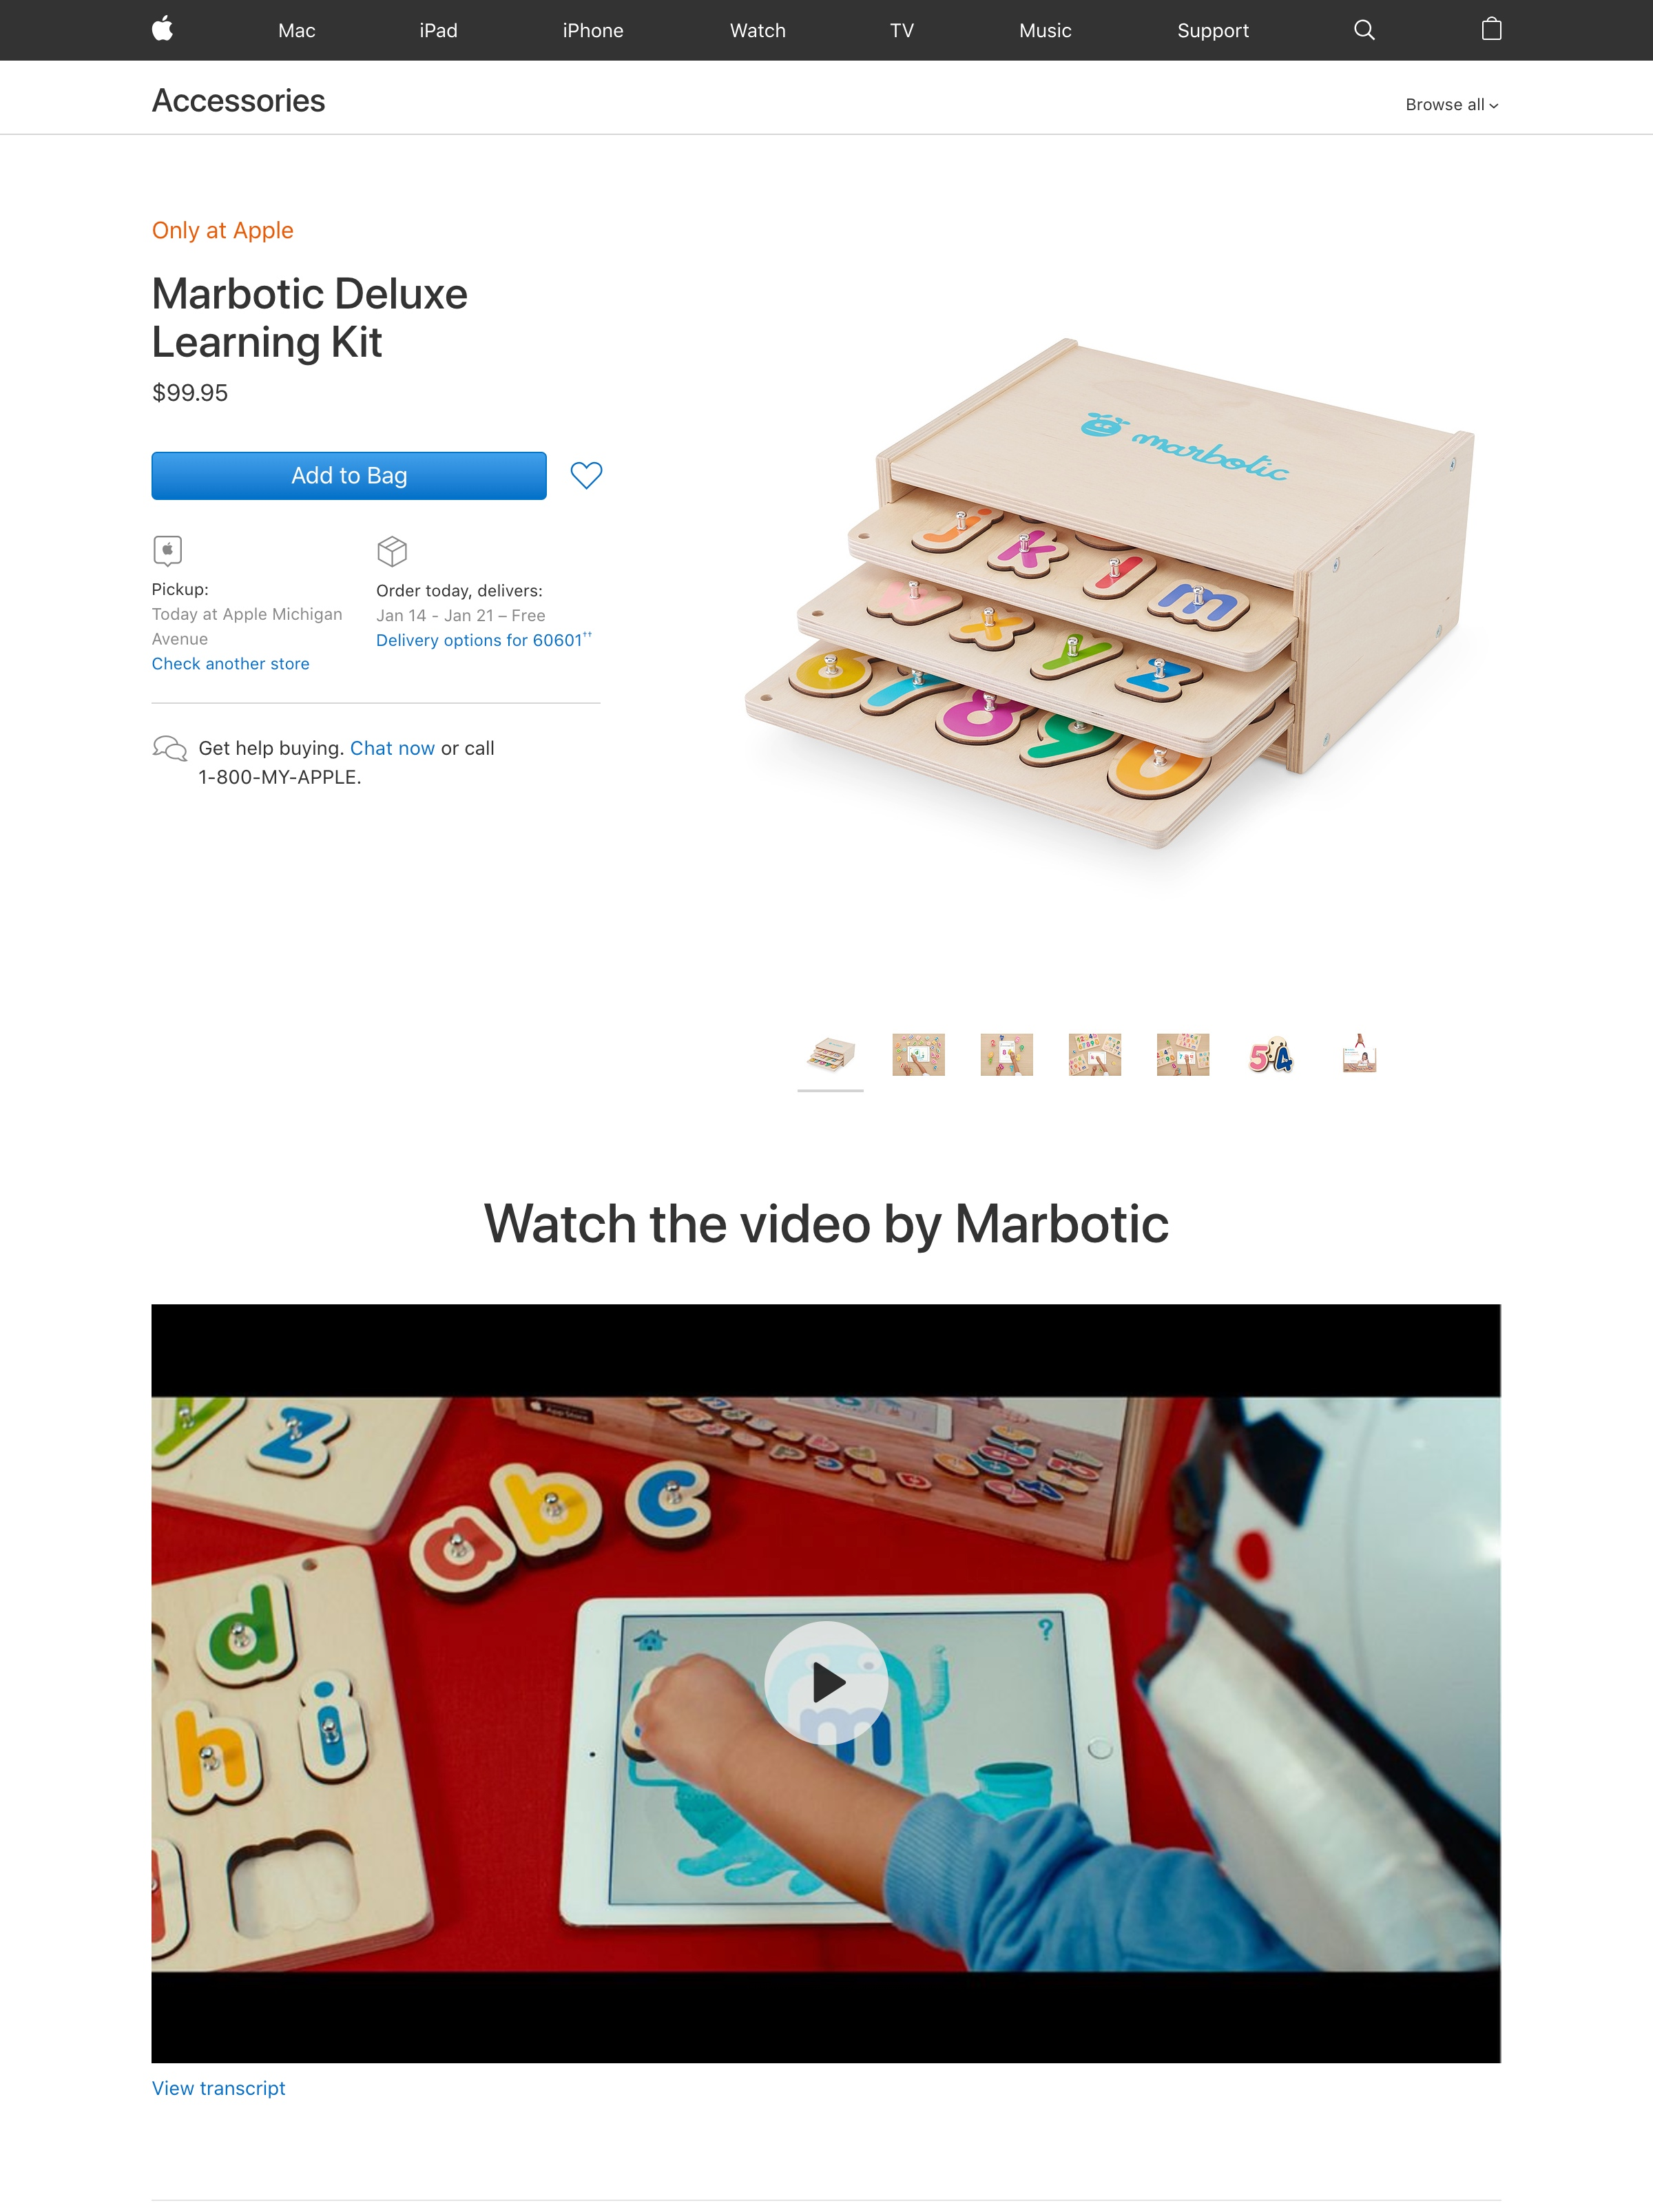 screencapture-apple-shop-product-HM712ZM-A-marbotic-deluxe-learning-kit-2018-12-19-17_34_15.png